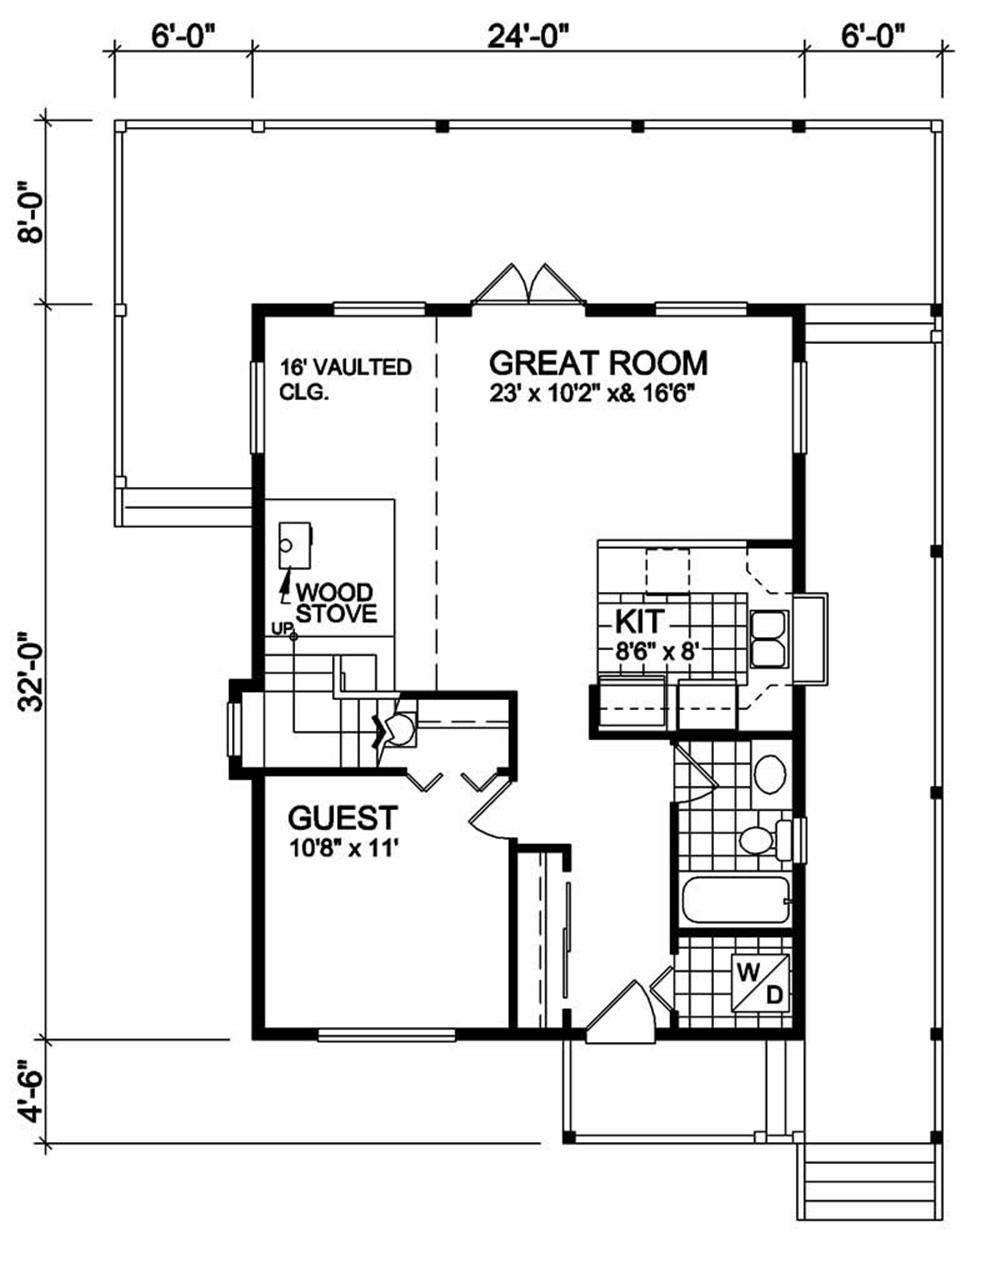 House Plan RS-1333 Main Floor Plan